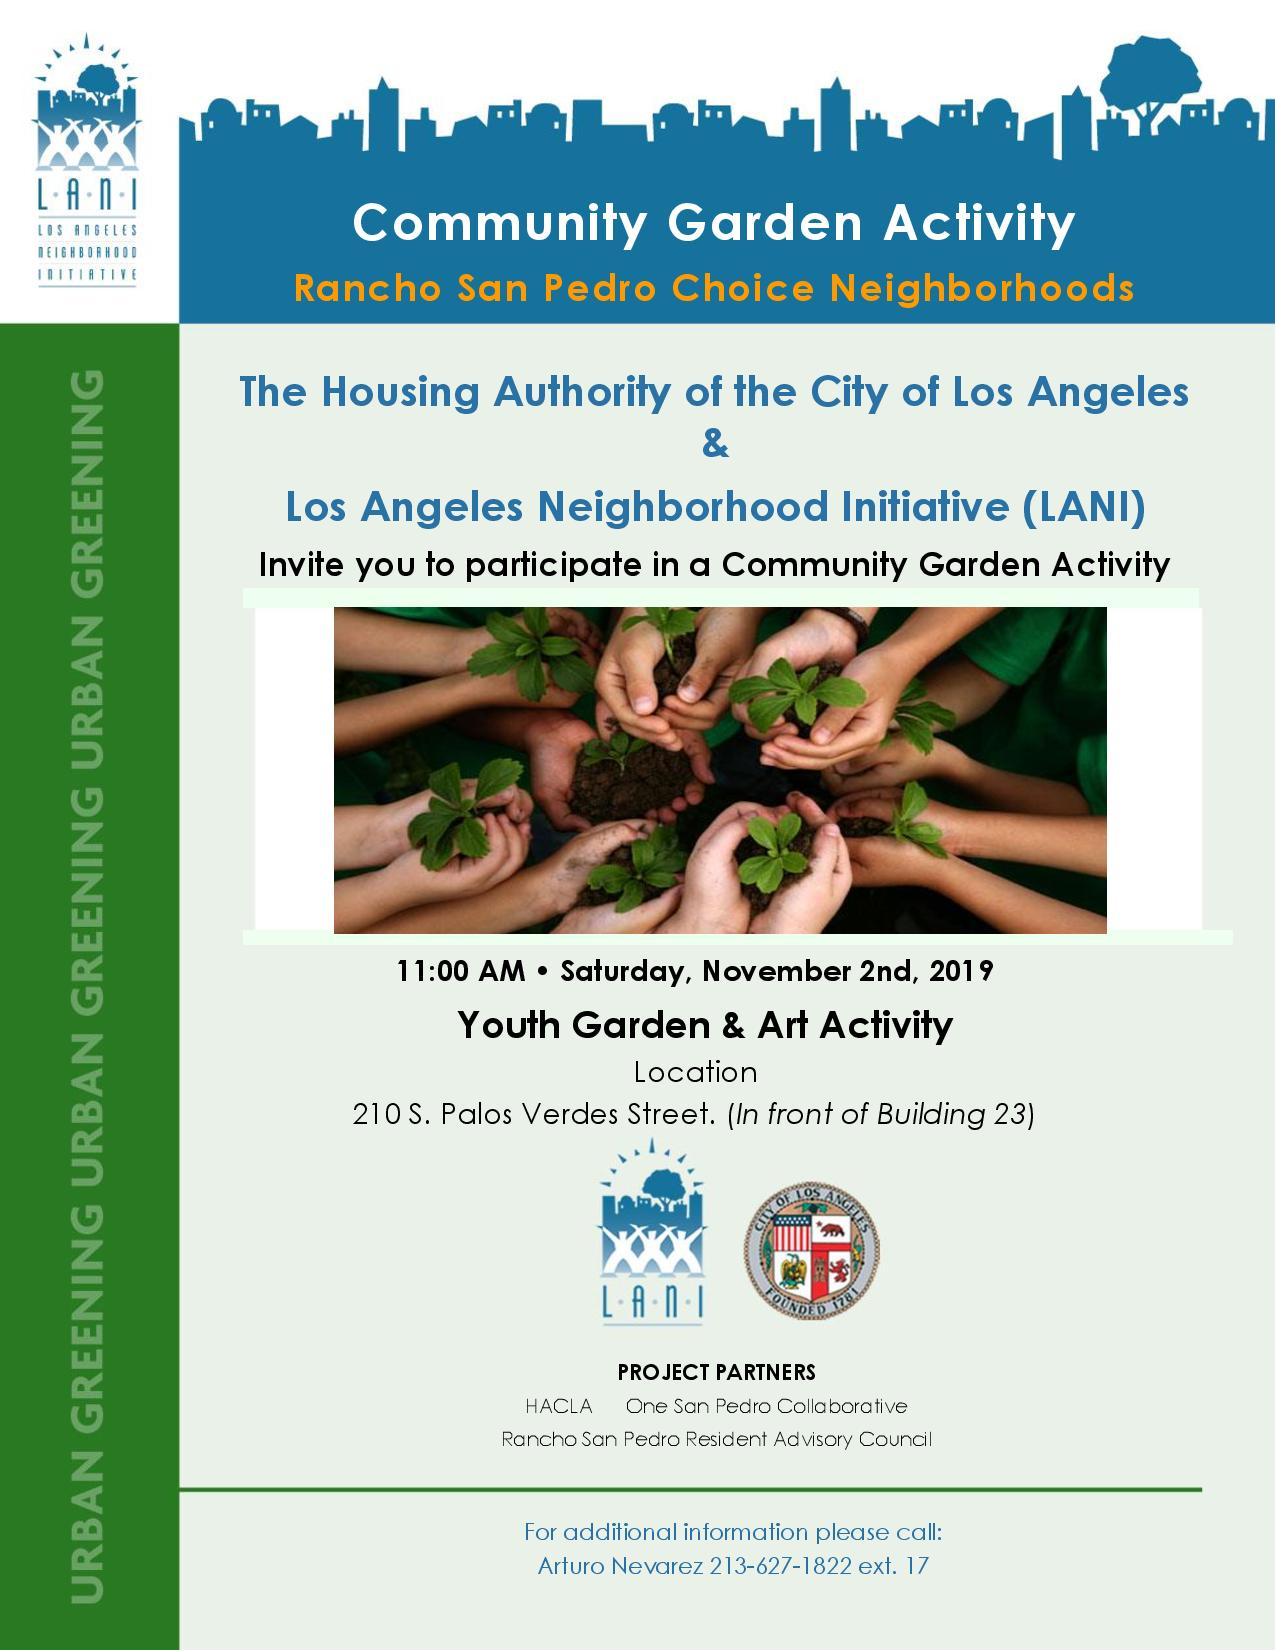 Community Garden Activity at Rancho San Pedro